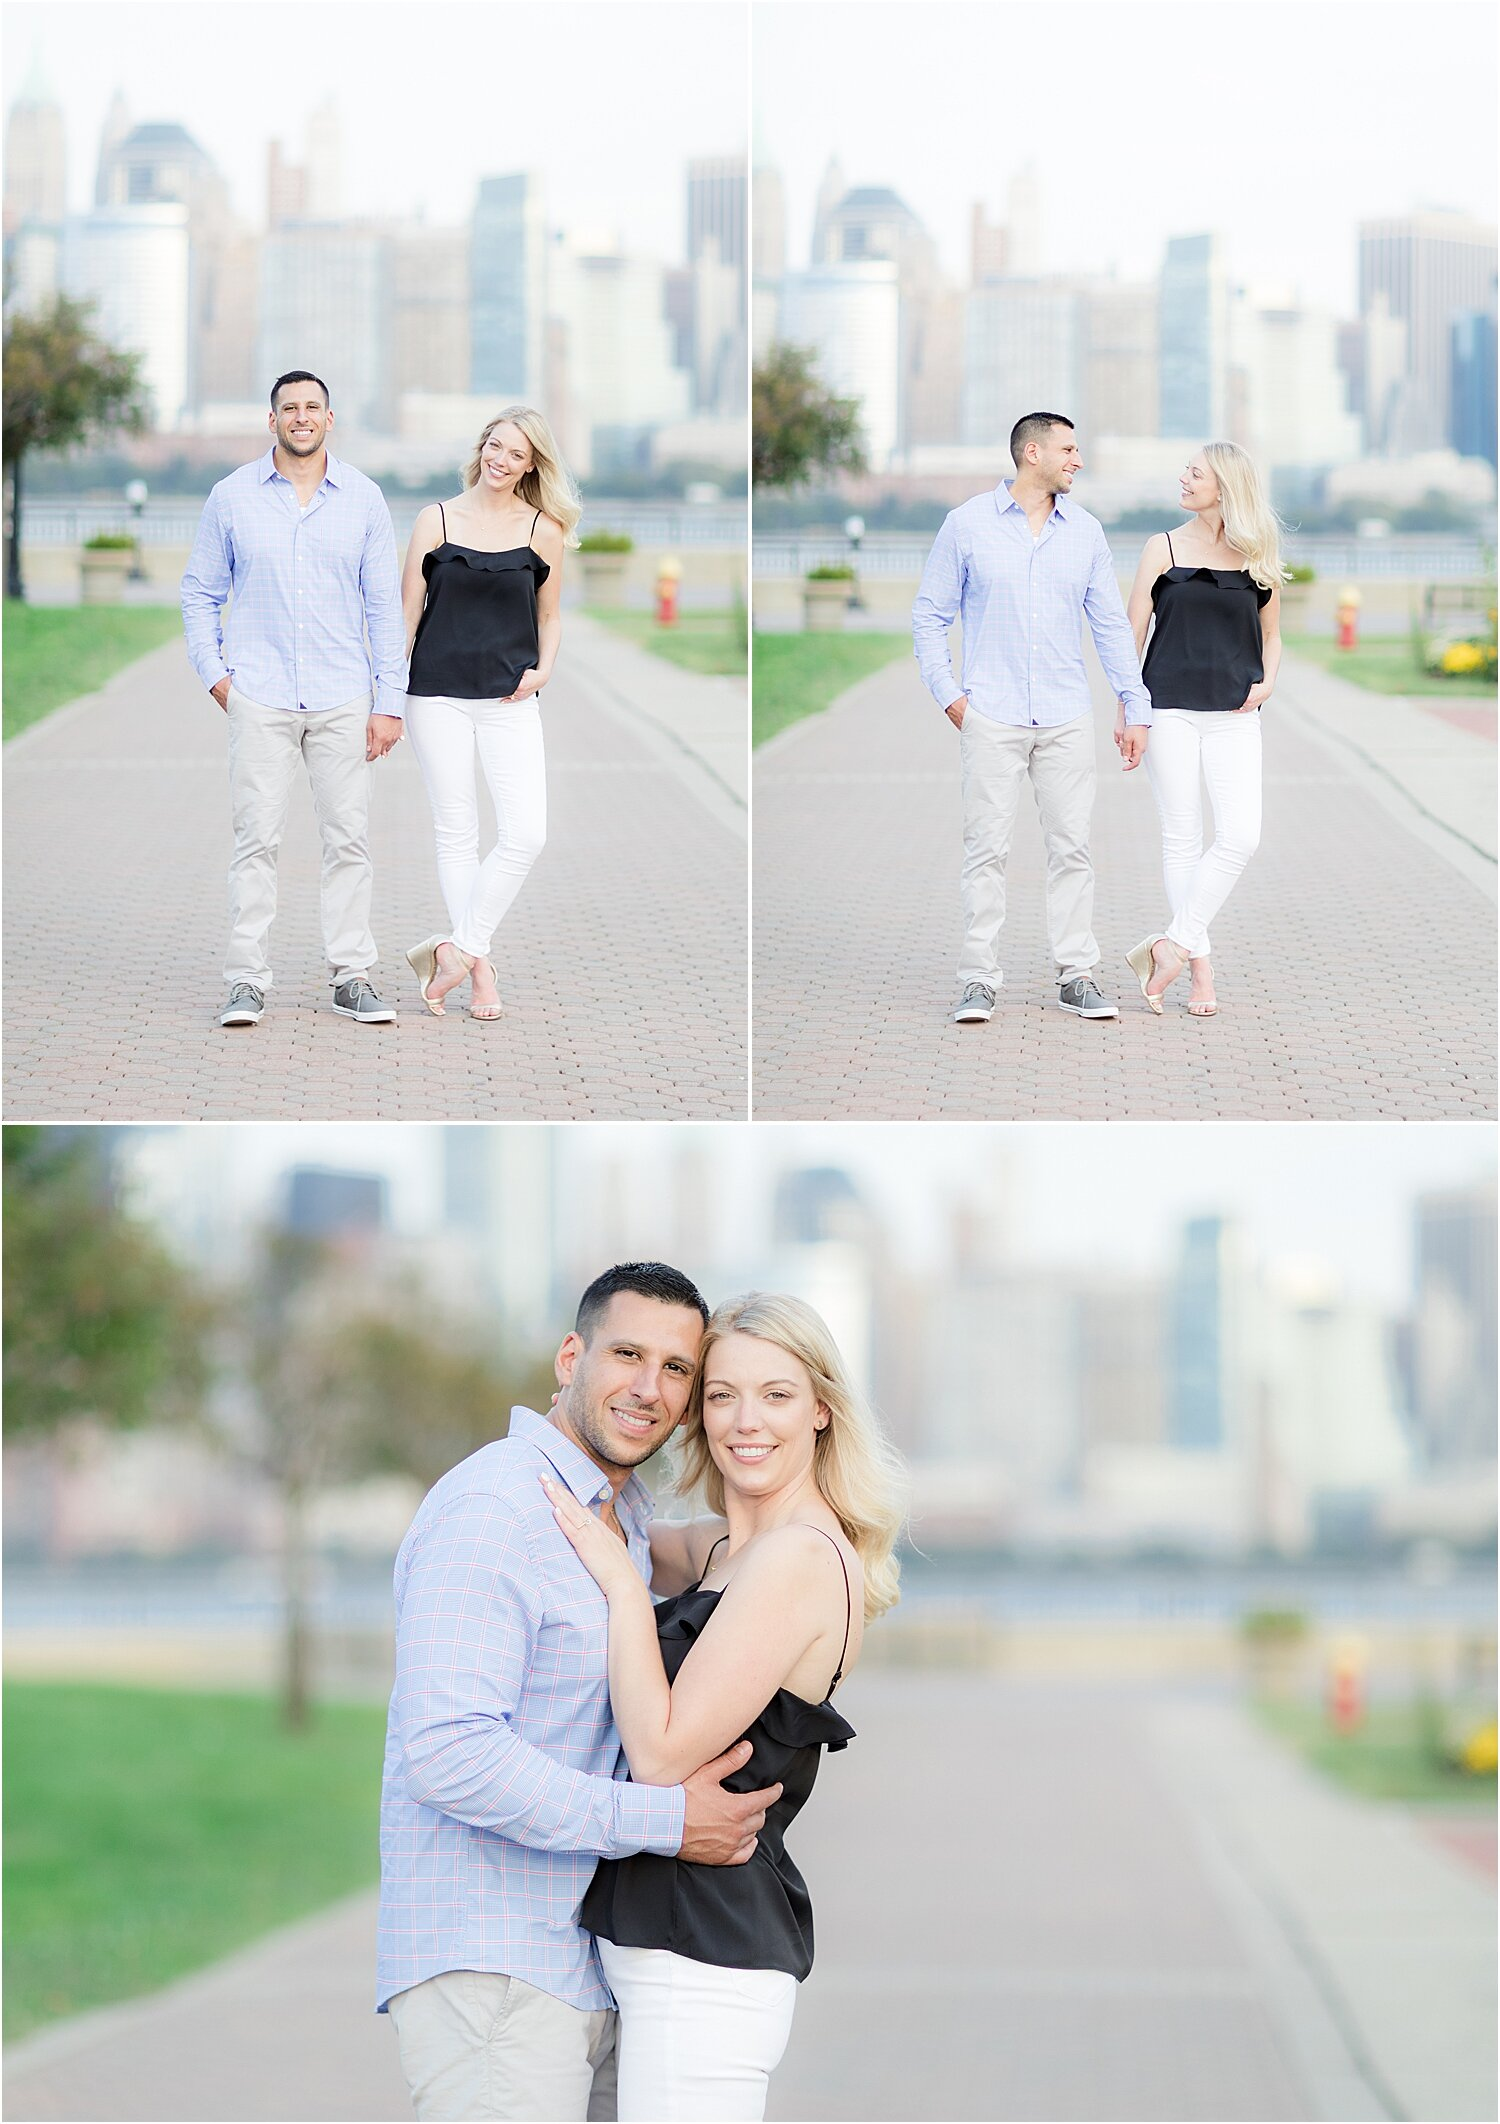 engagement photos with the NYC skyline